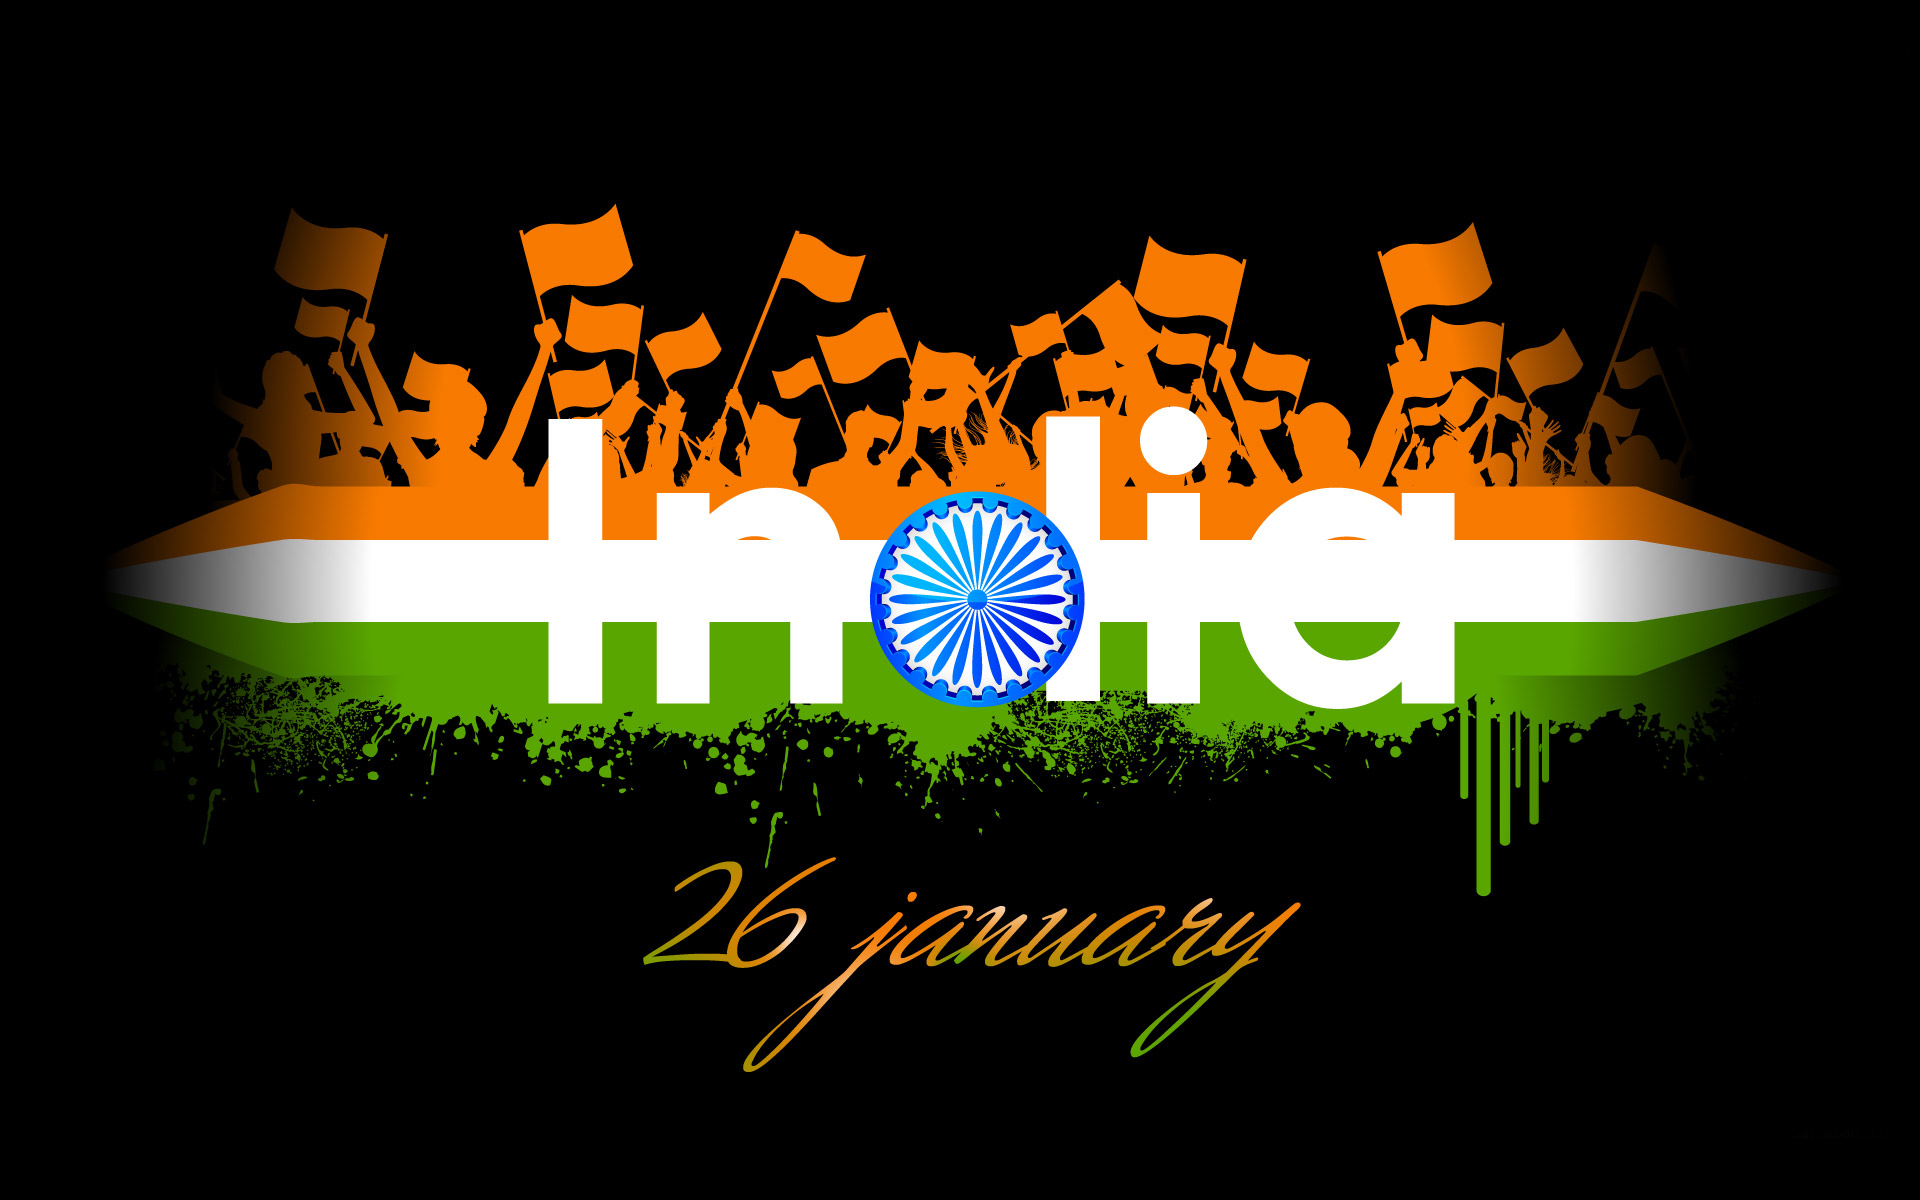 India Flag Hd Art: {*26 Jan 2017*} 68th Republic Day India HD Images